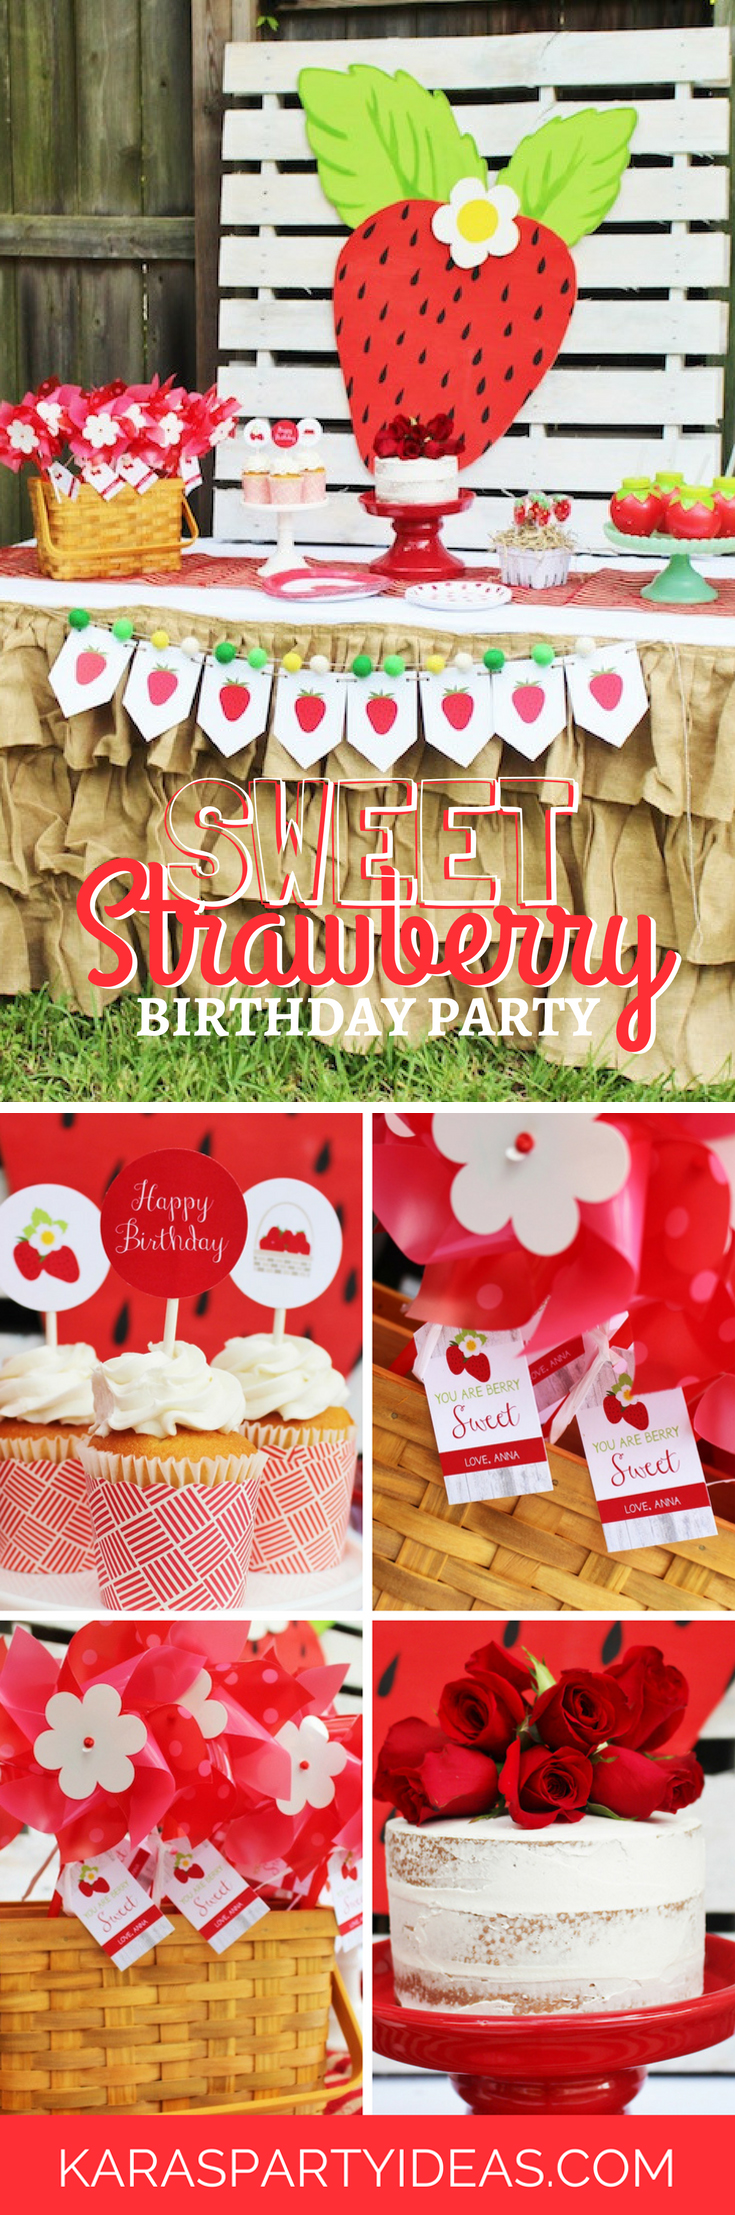 Sweet Strawberry Birthday Party via Kara's Party Ideas - KarasPartyIdeas.com